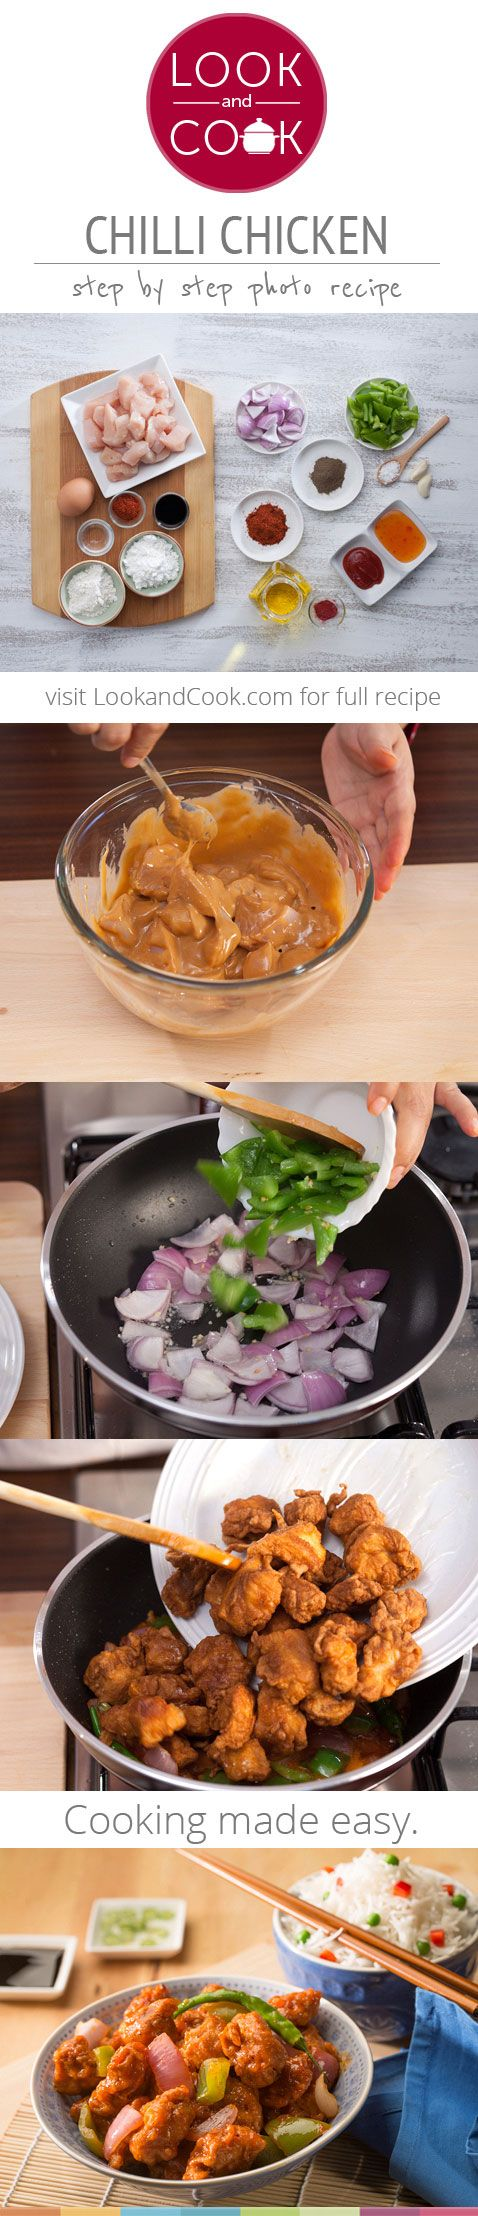 How to make chilli chicken recipe yum yum yummiesttttt how to make chilli chicken recipe yum yum yummiesttttt pinterest chilli chicken recipe recipes and food forumfinder Image collections